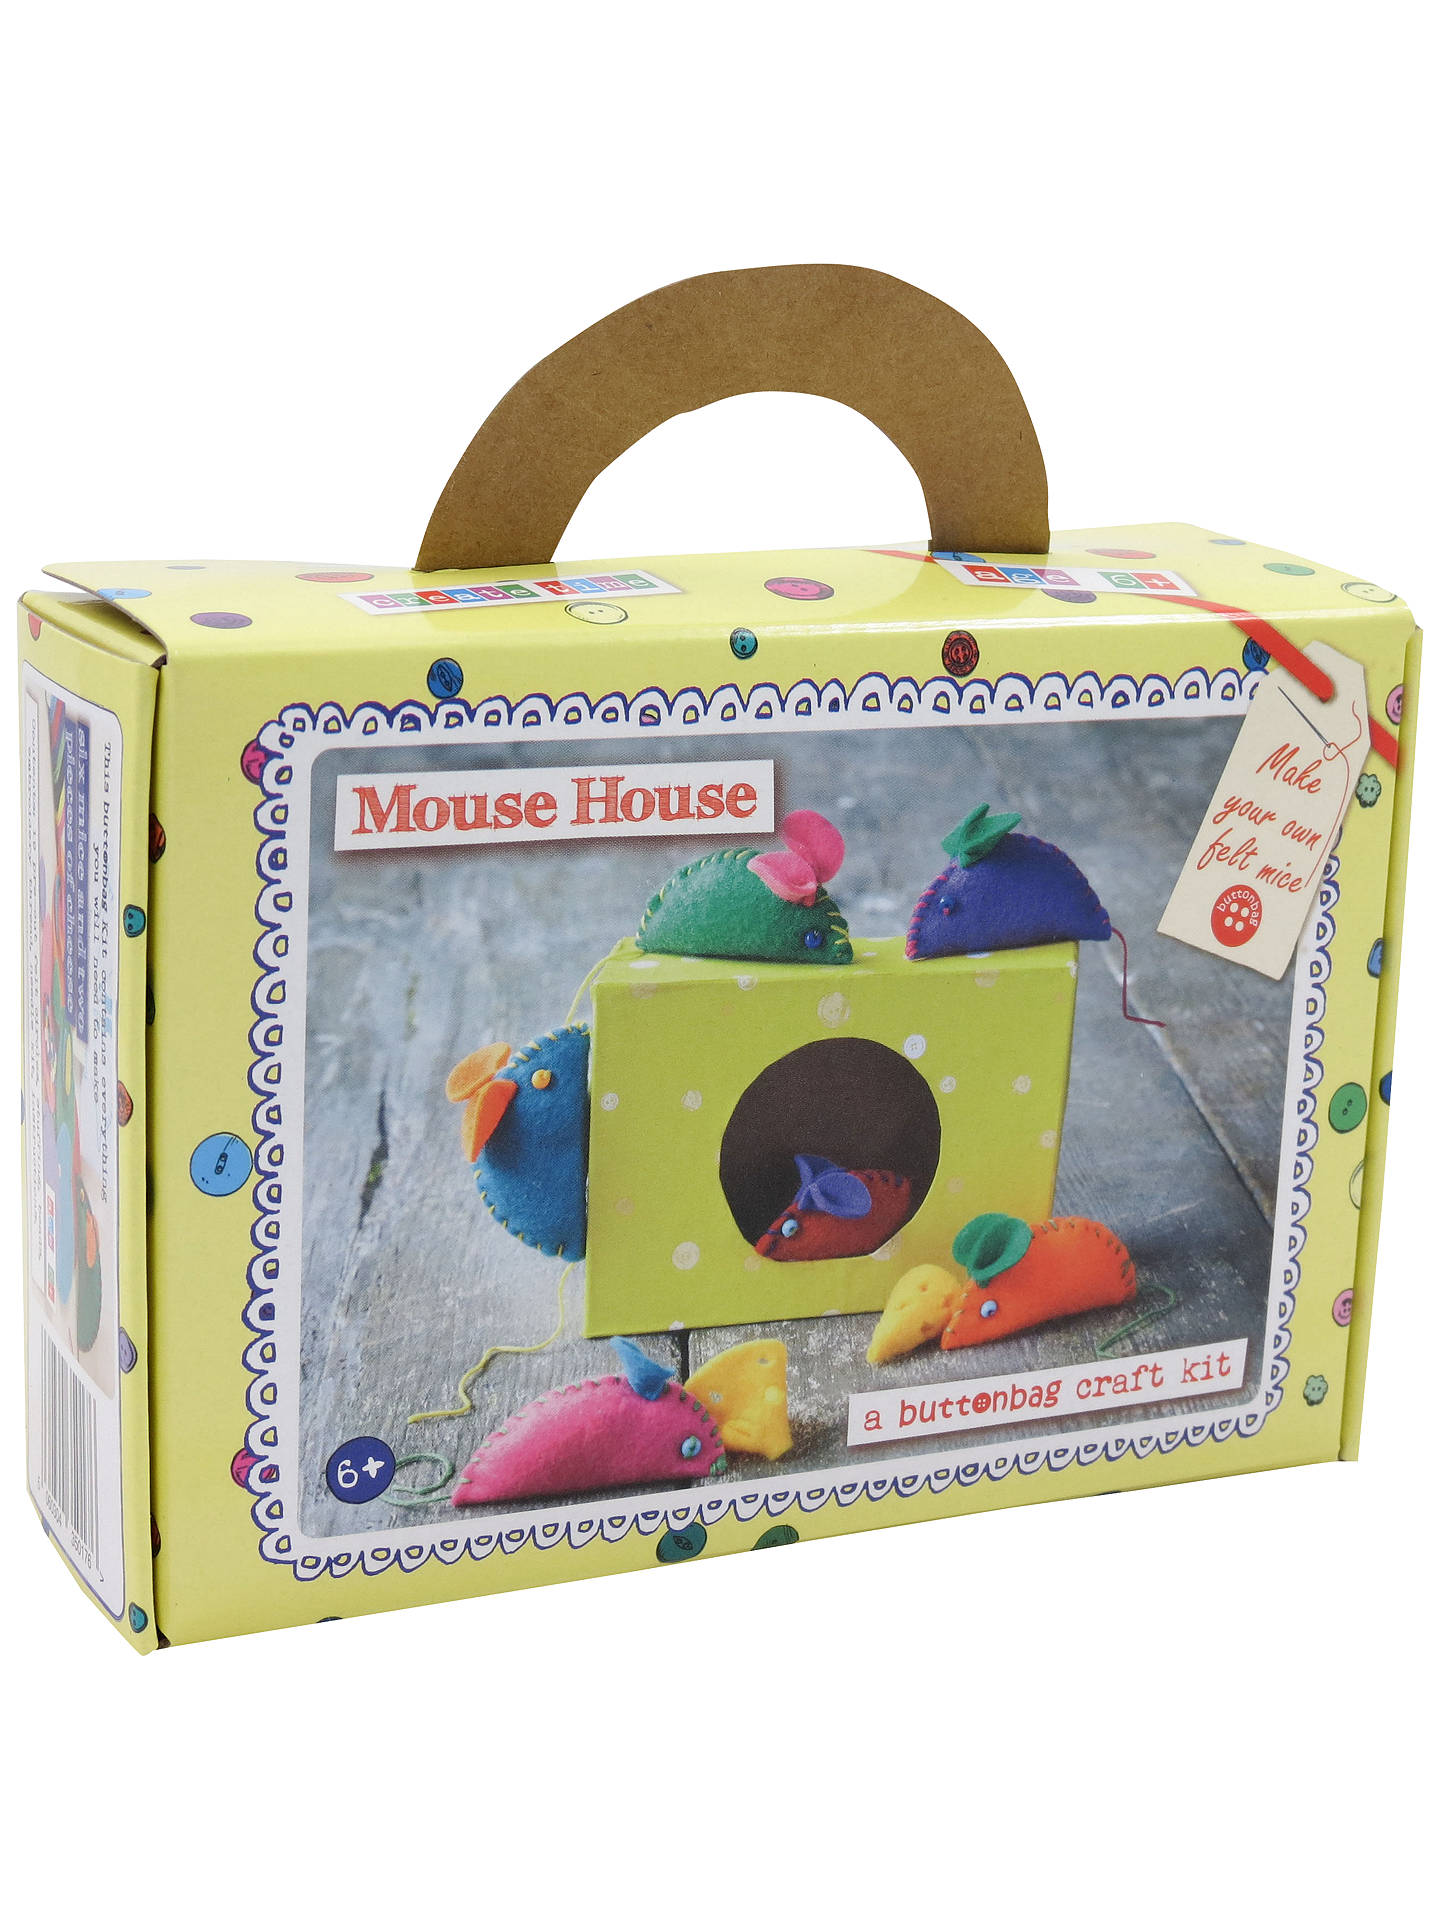 BuyButtonbag Mouse House Craft Kit Online at johnlewis.com